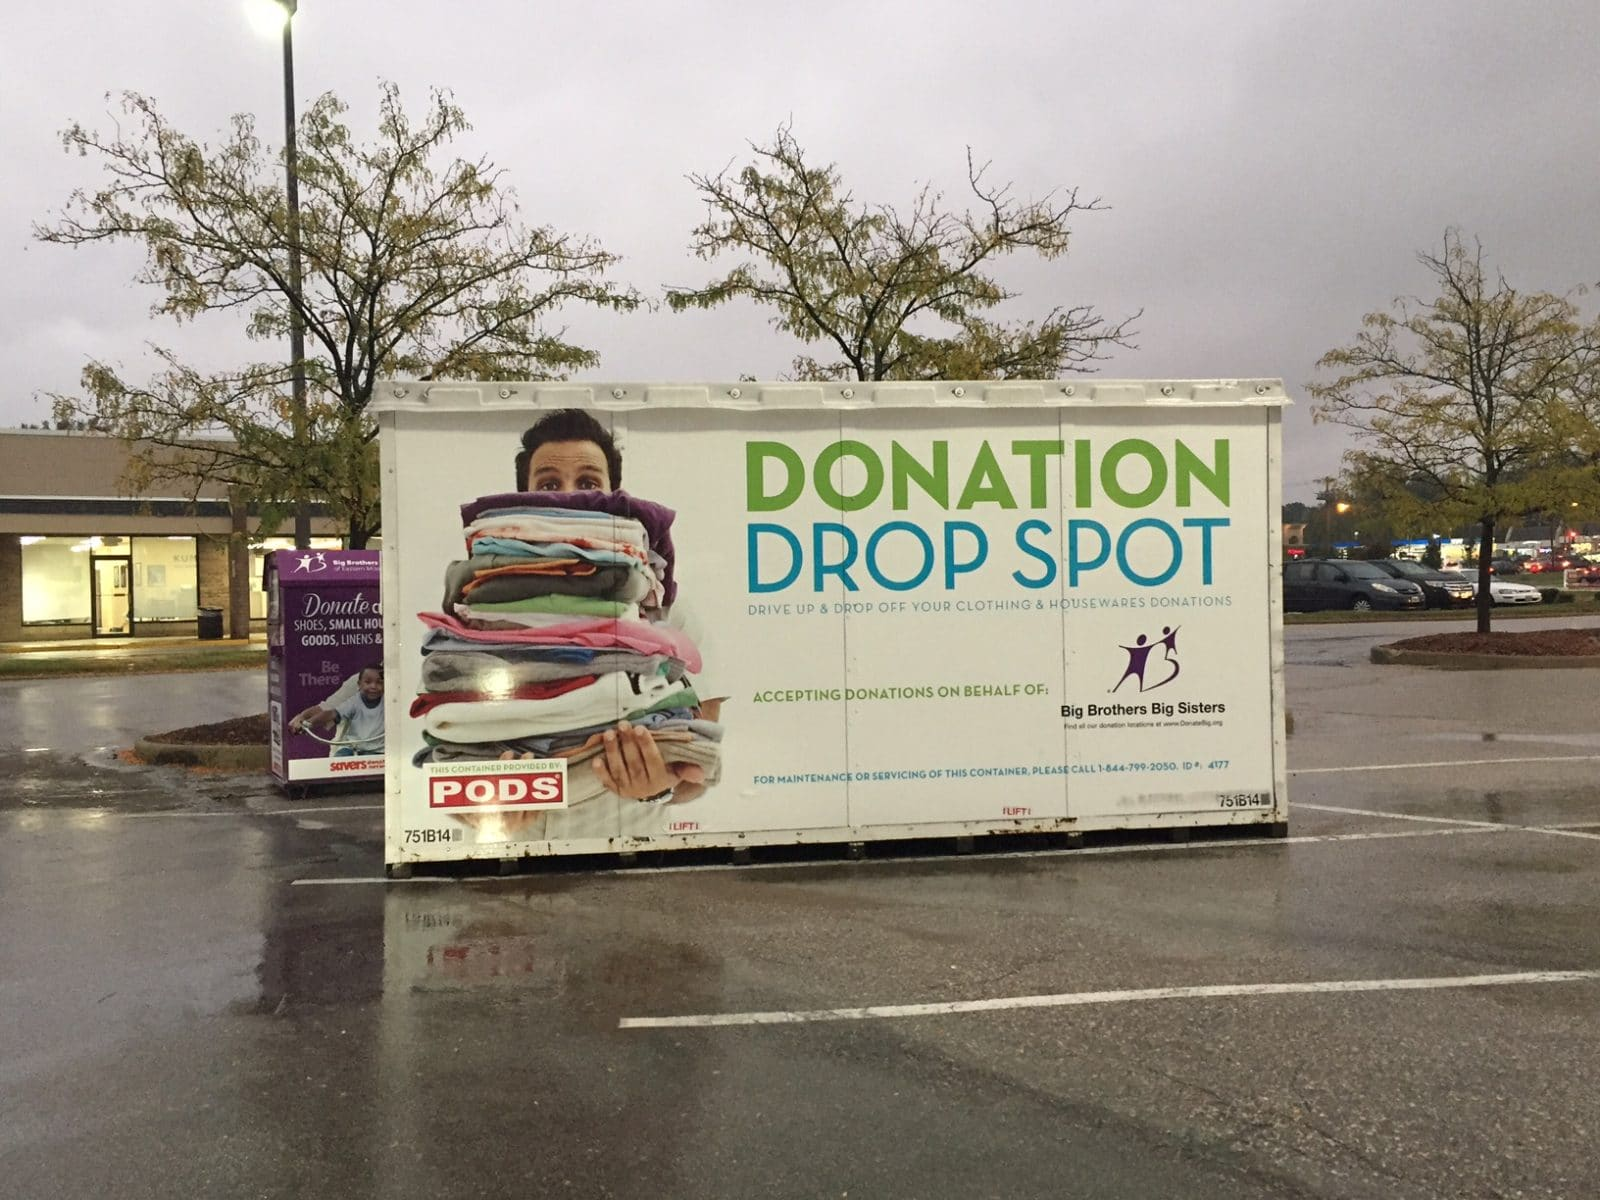 Organizing Your Closet For Fall? Help Your Community with Donation Drop Spots #STL (Sponsored)